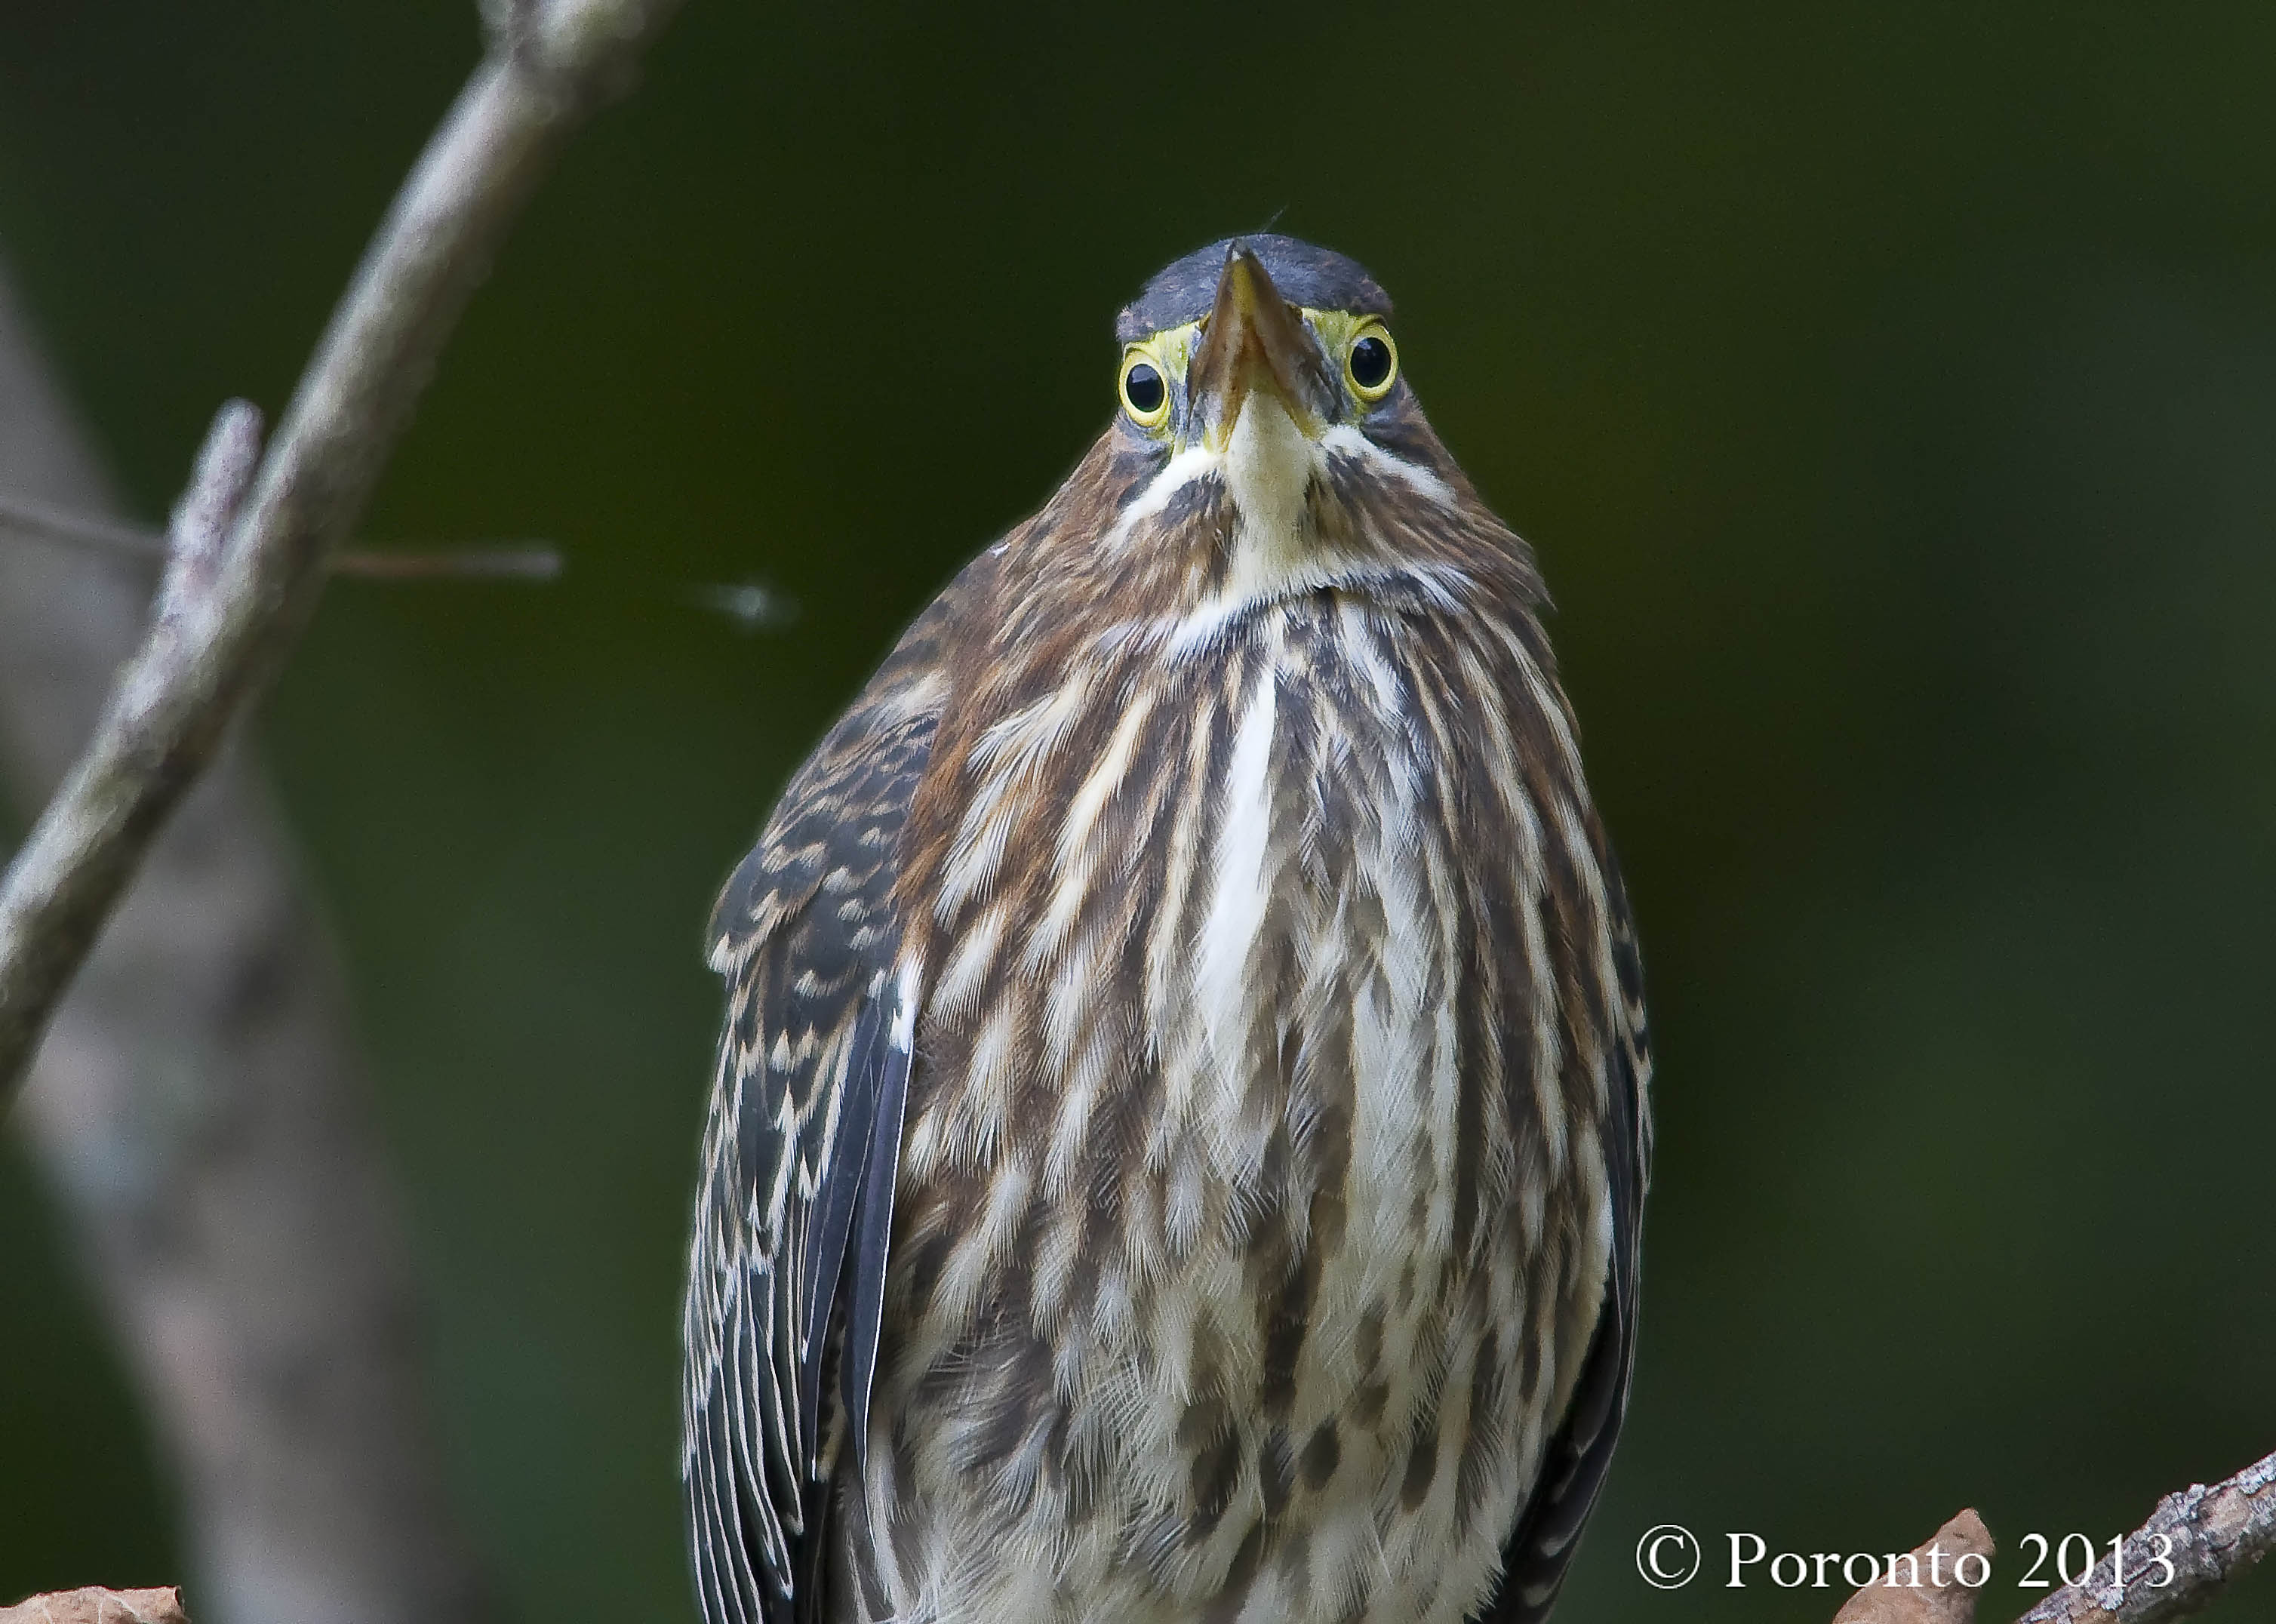 Green Heron - you can appreciate how the eyes are looking forward when his head is tilted upward